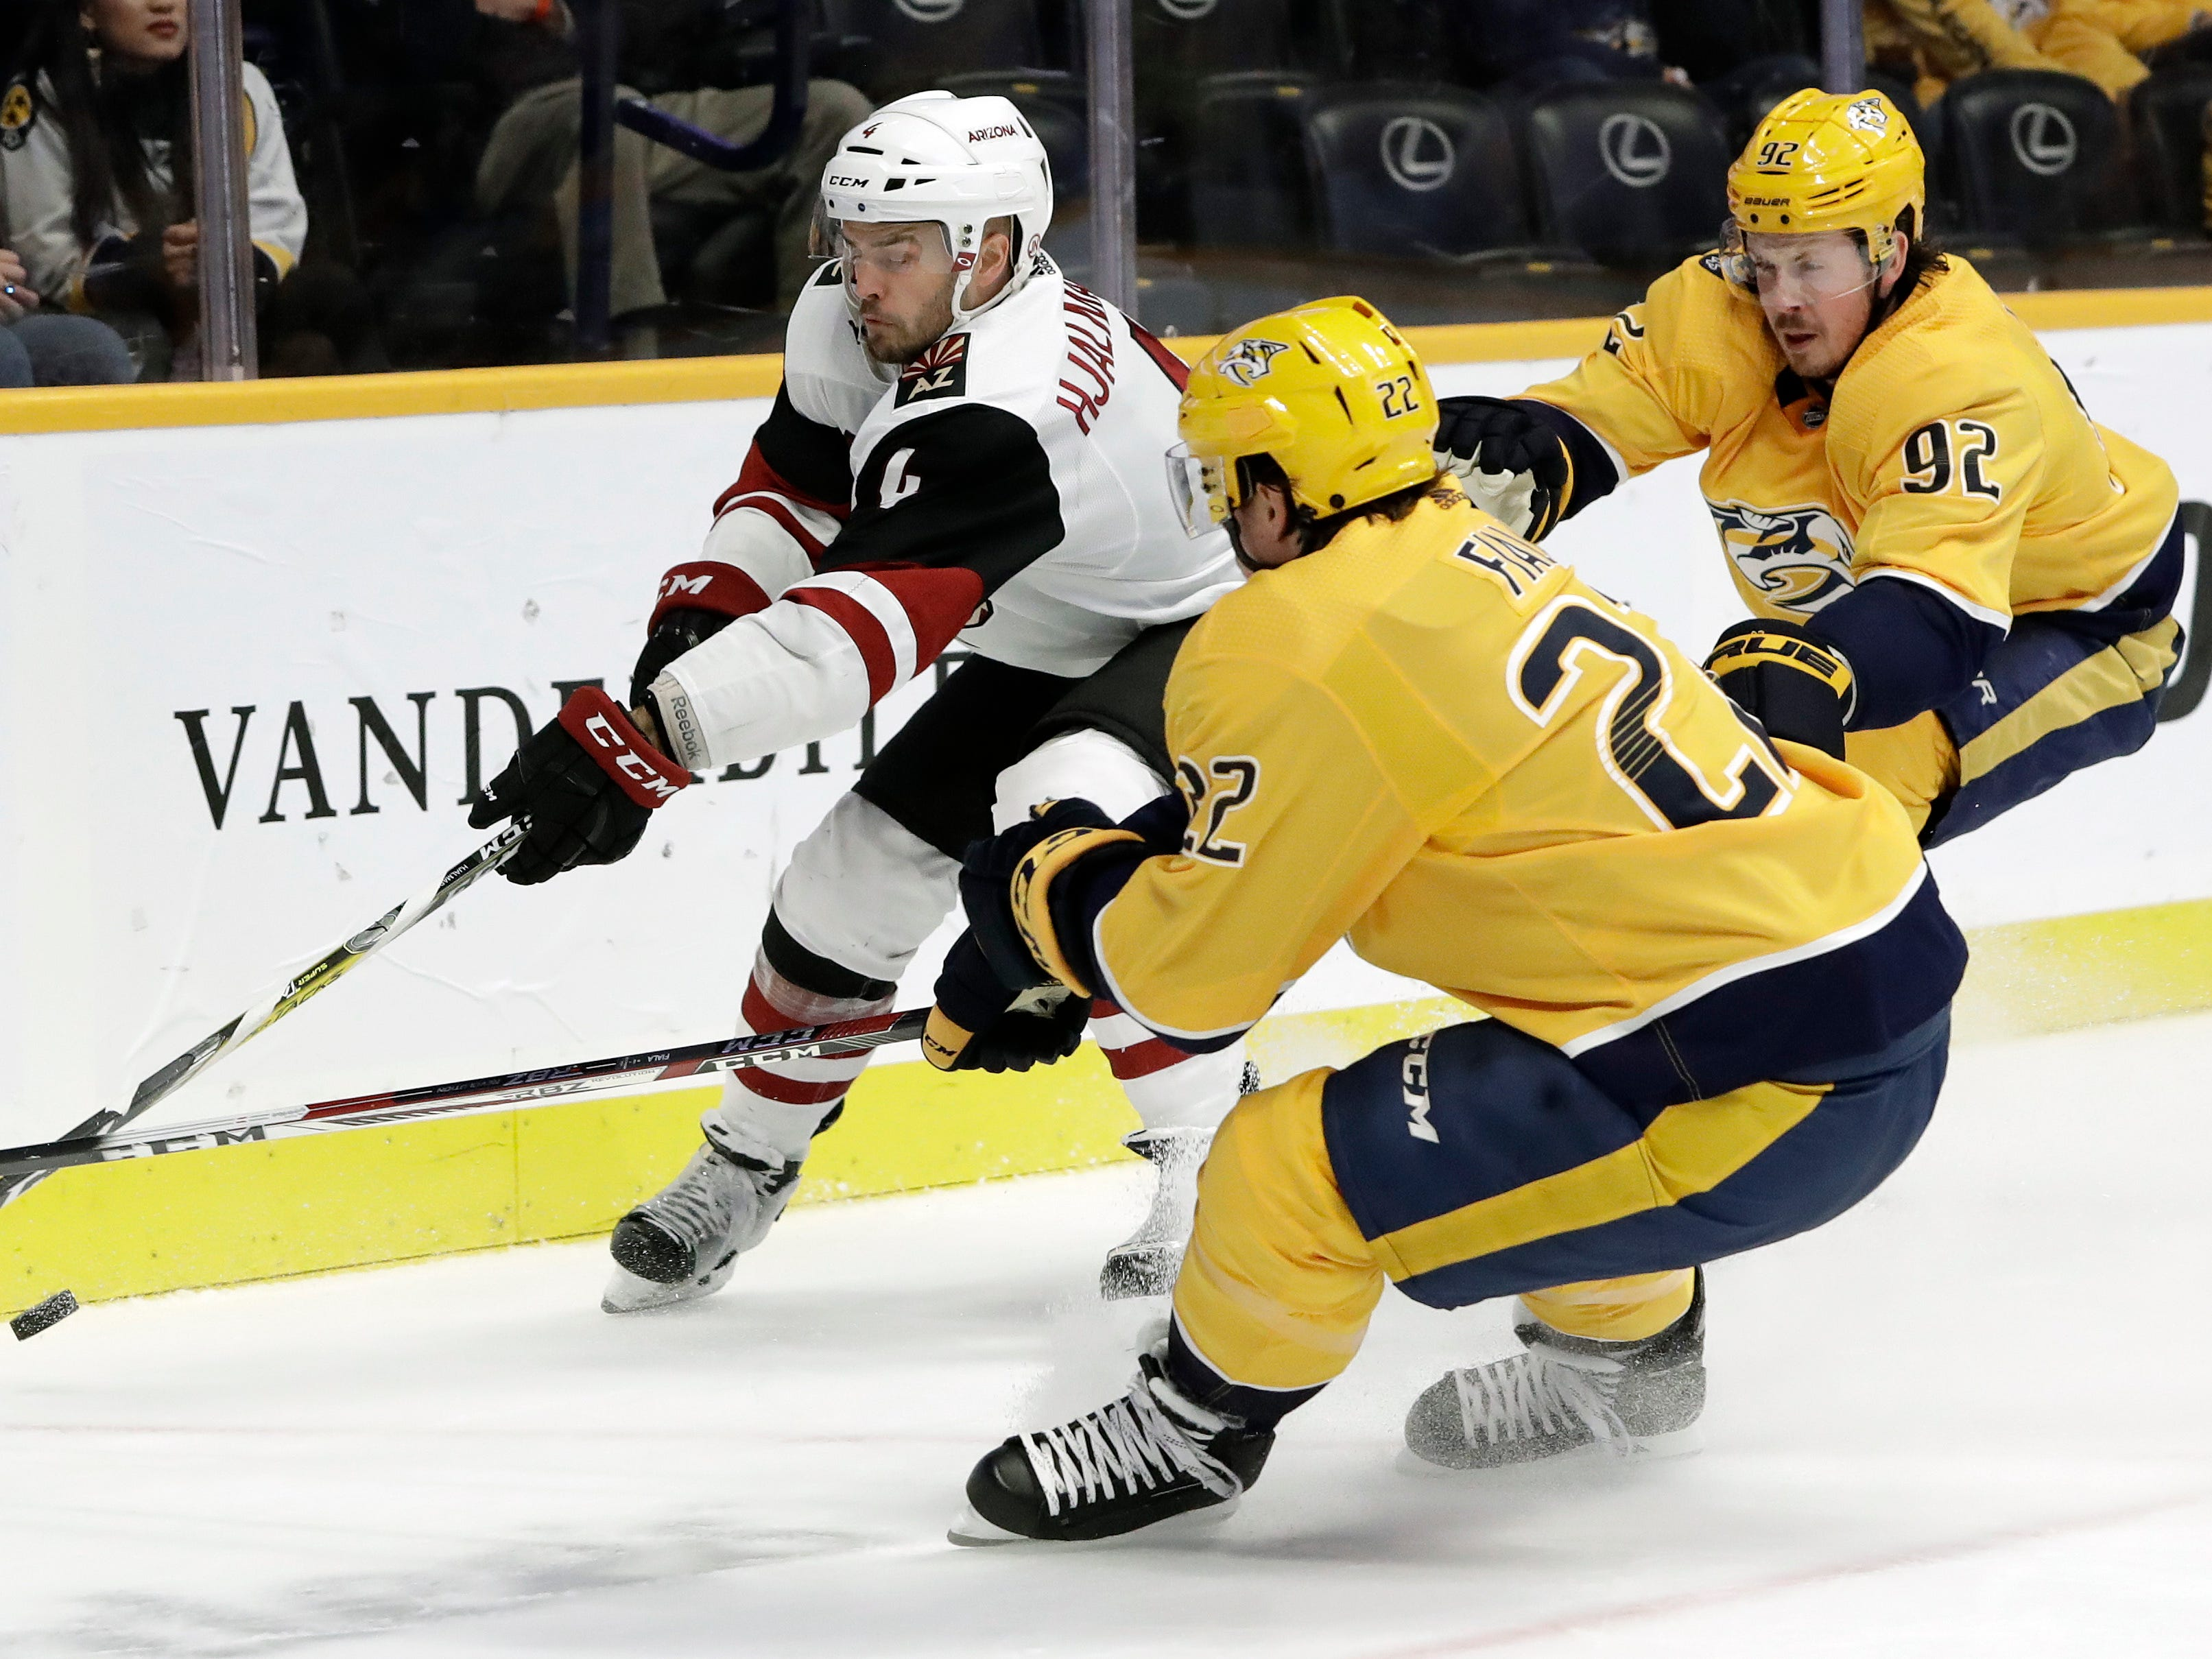 Arizona Coyotes defenseman Niklas Hjalmarsson (4), of Sweden, chases after the puck with Nashville Predators left wing Kevin Fiala (22), of Switzerland, and center Ryan Johansen (92) in the second period of an NHL hockey game Thursday, Nov. 29, 2018, in Nashville, Tenn. (AP Photo/Mark Humphrey)